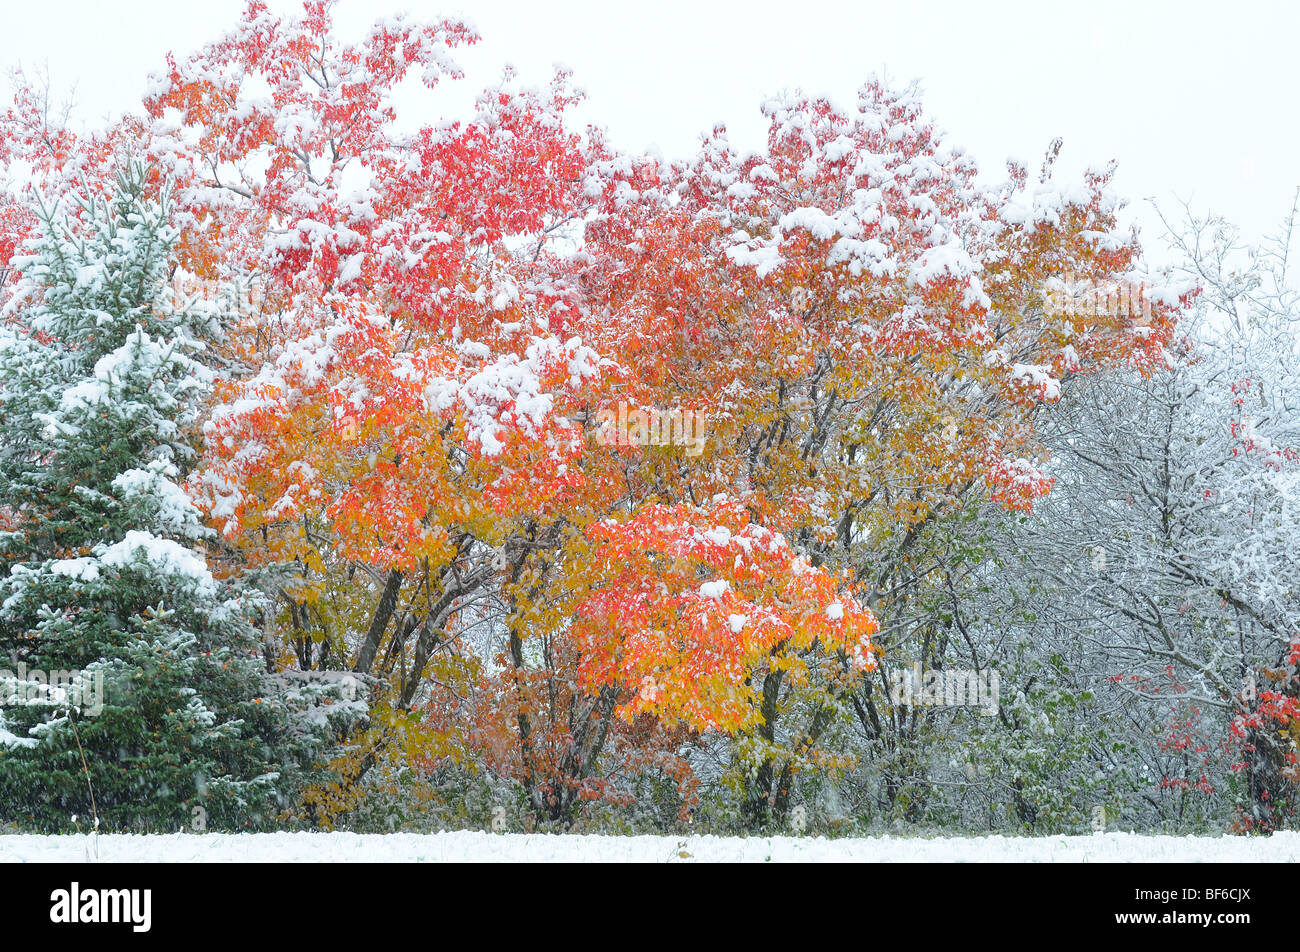 Early Snow in October, Fall Color - Stock Image